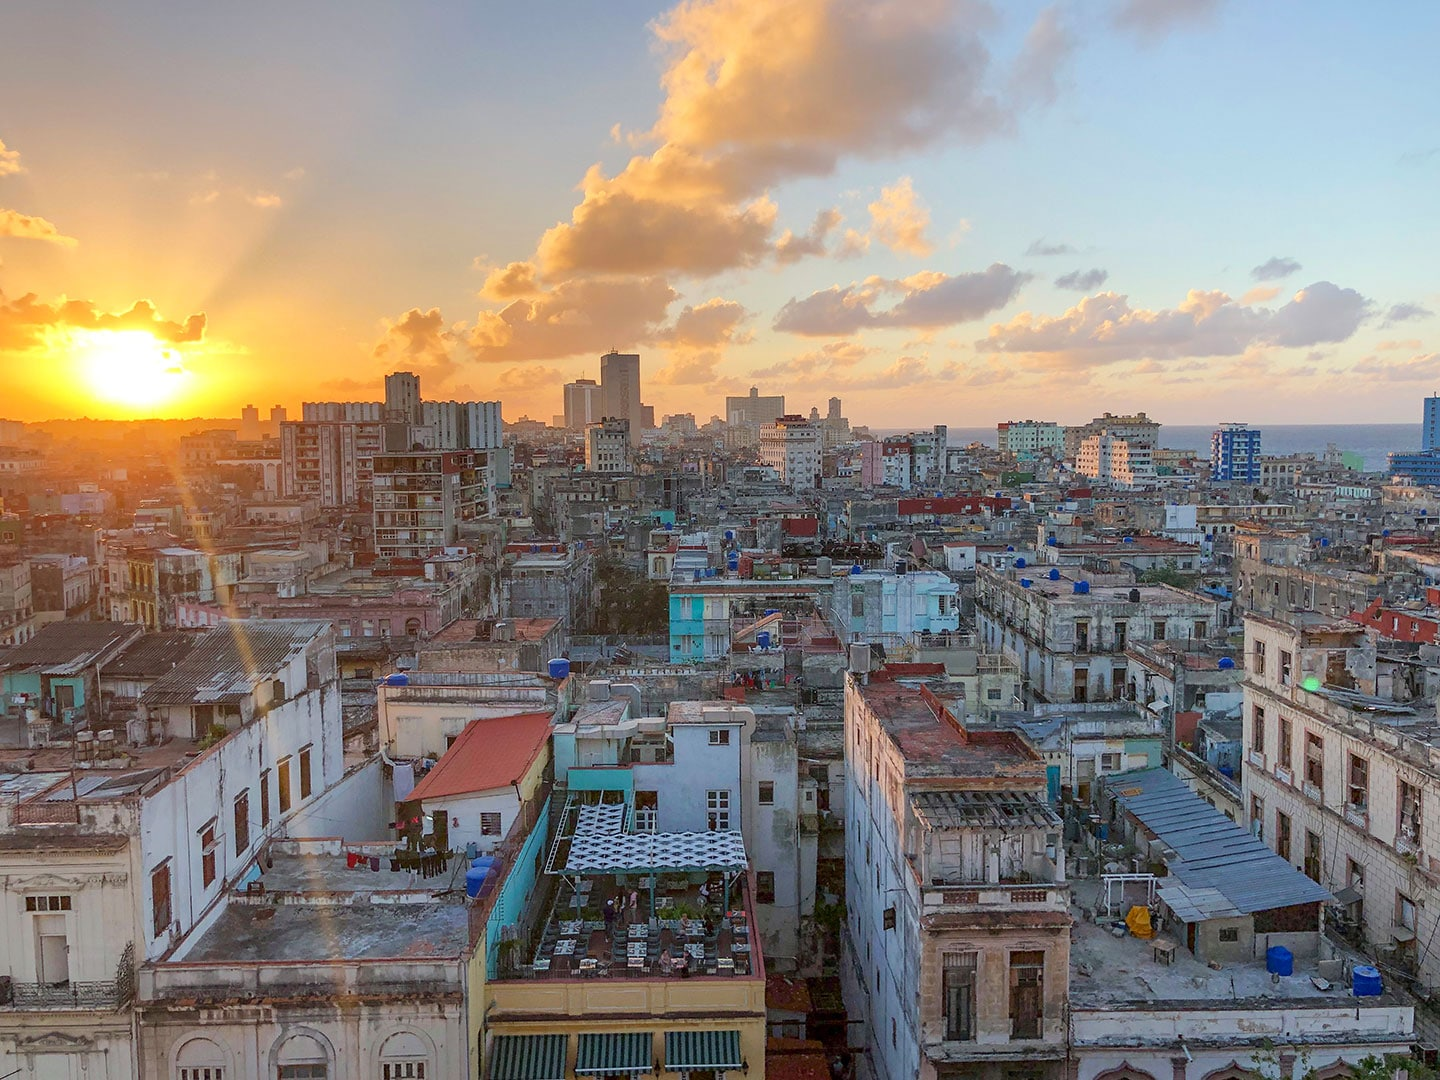 View of the Havana from the top at sunset on a sunny day